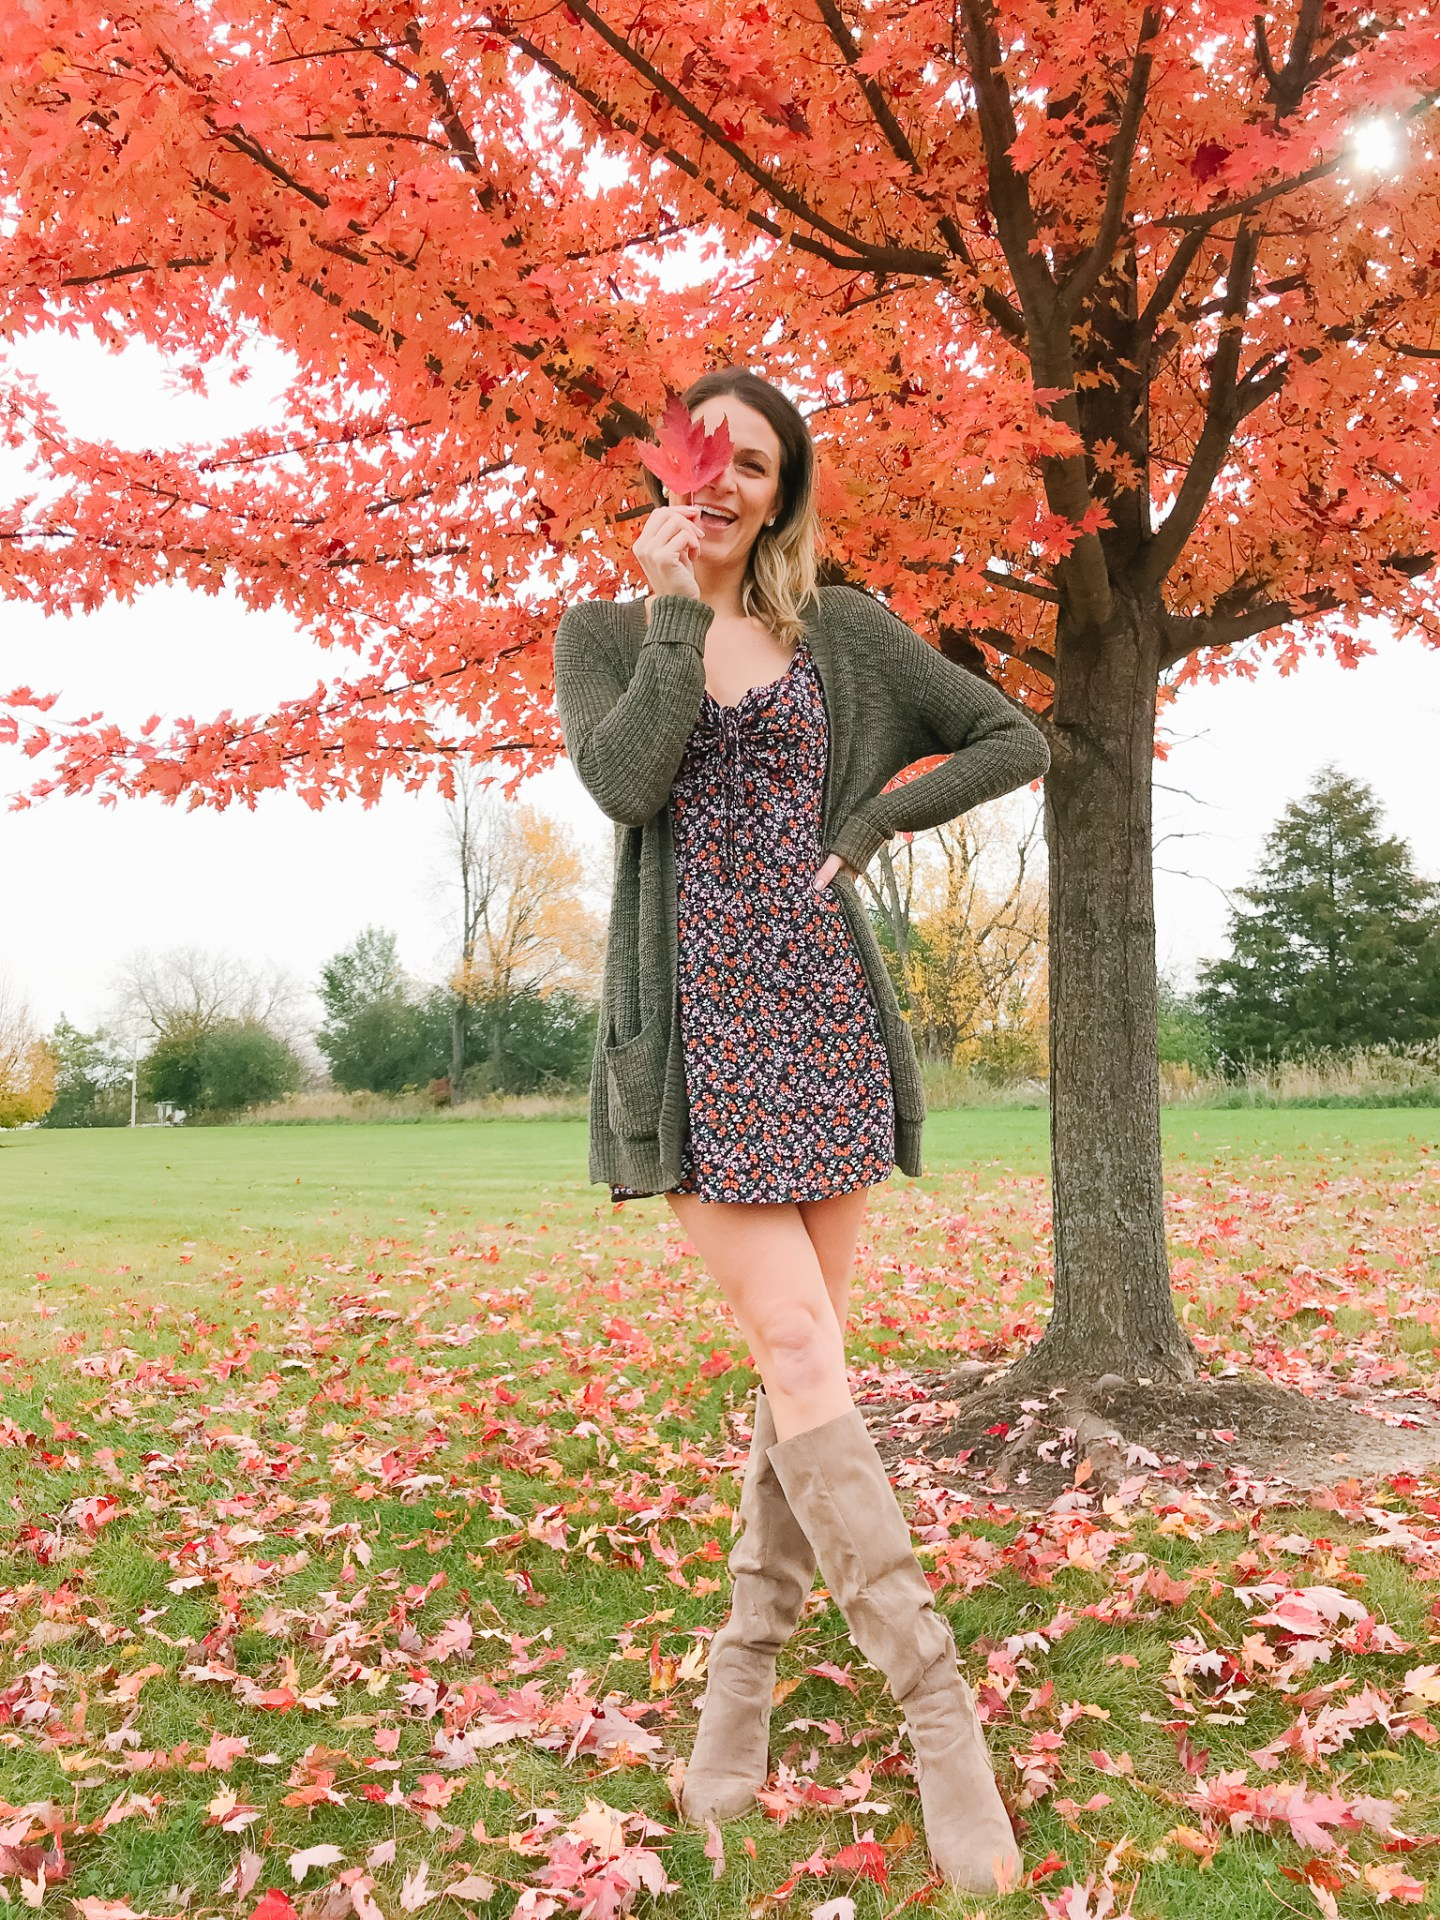 Shop Your Closet: 2 Ways To Style A Dress In The Fall